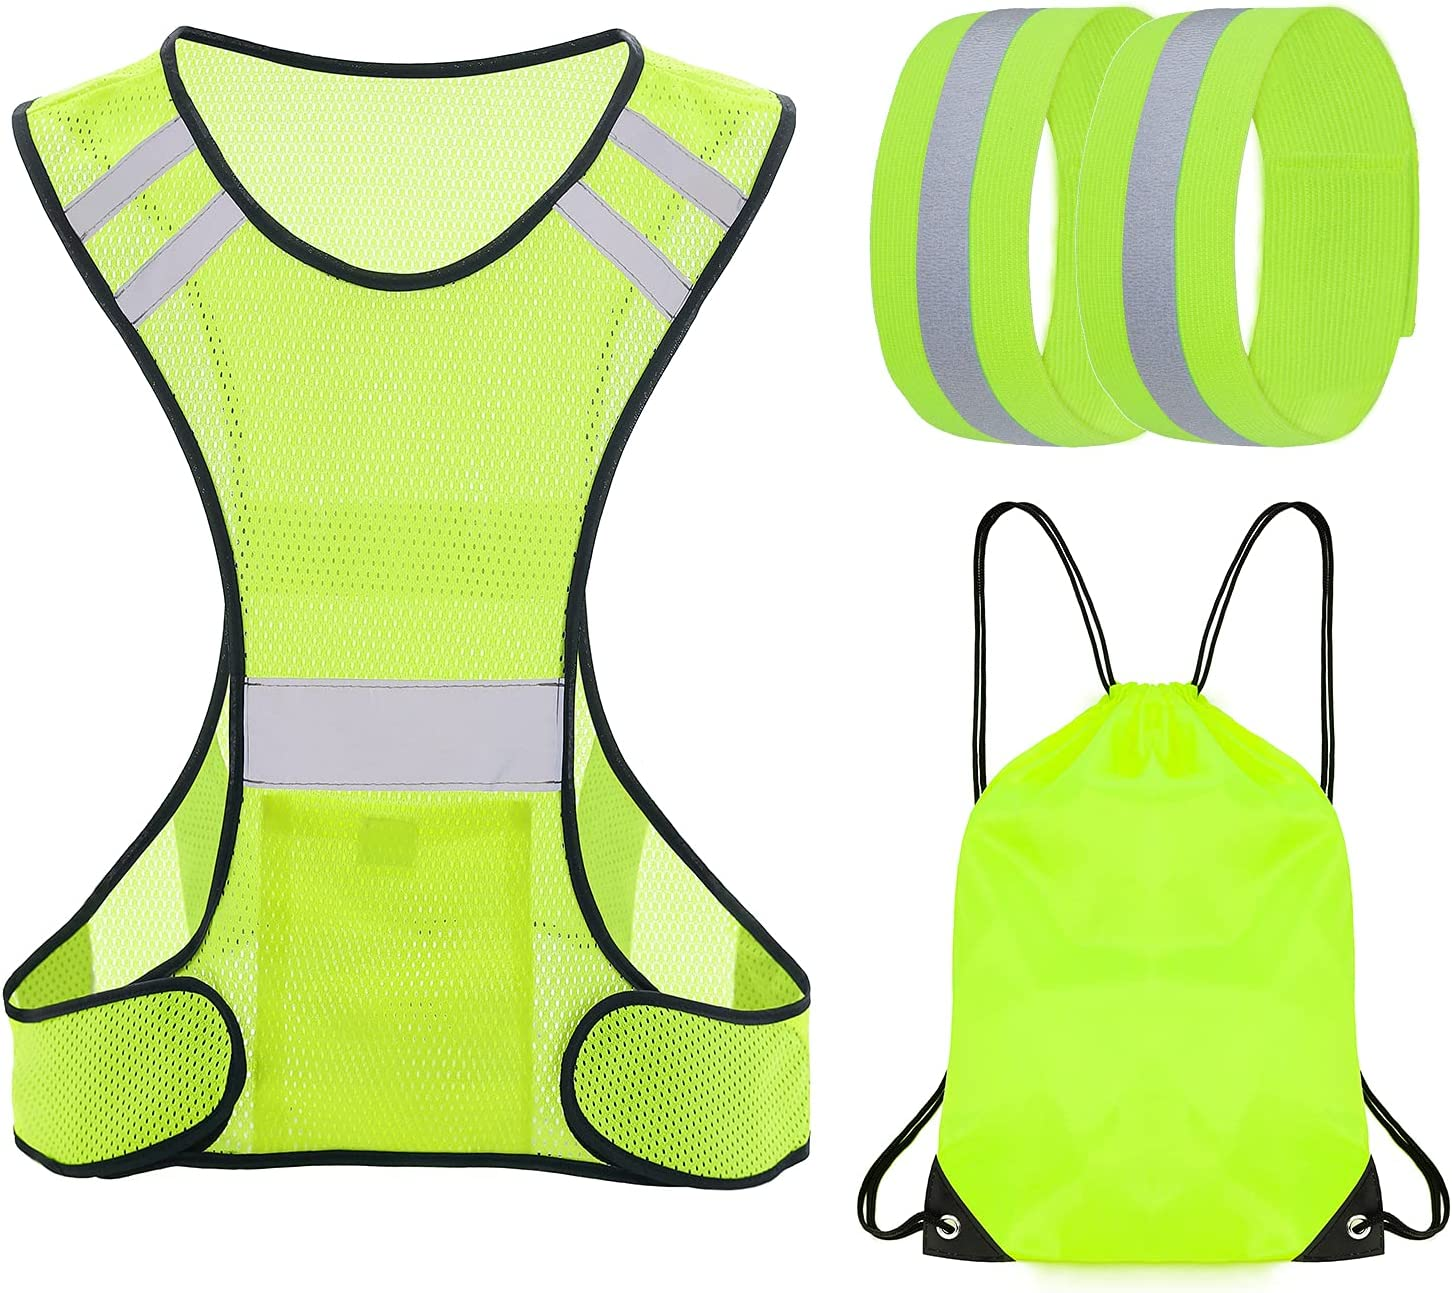 TCCFCCT Reflective Running Vest for High S Men All items free shipping Women Ranking TOP4 Visibility